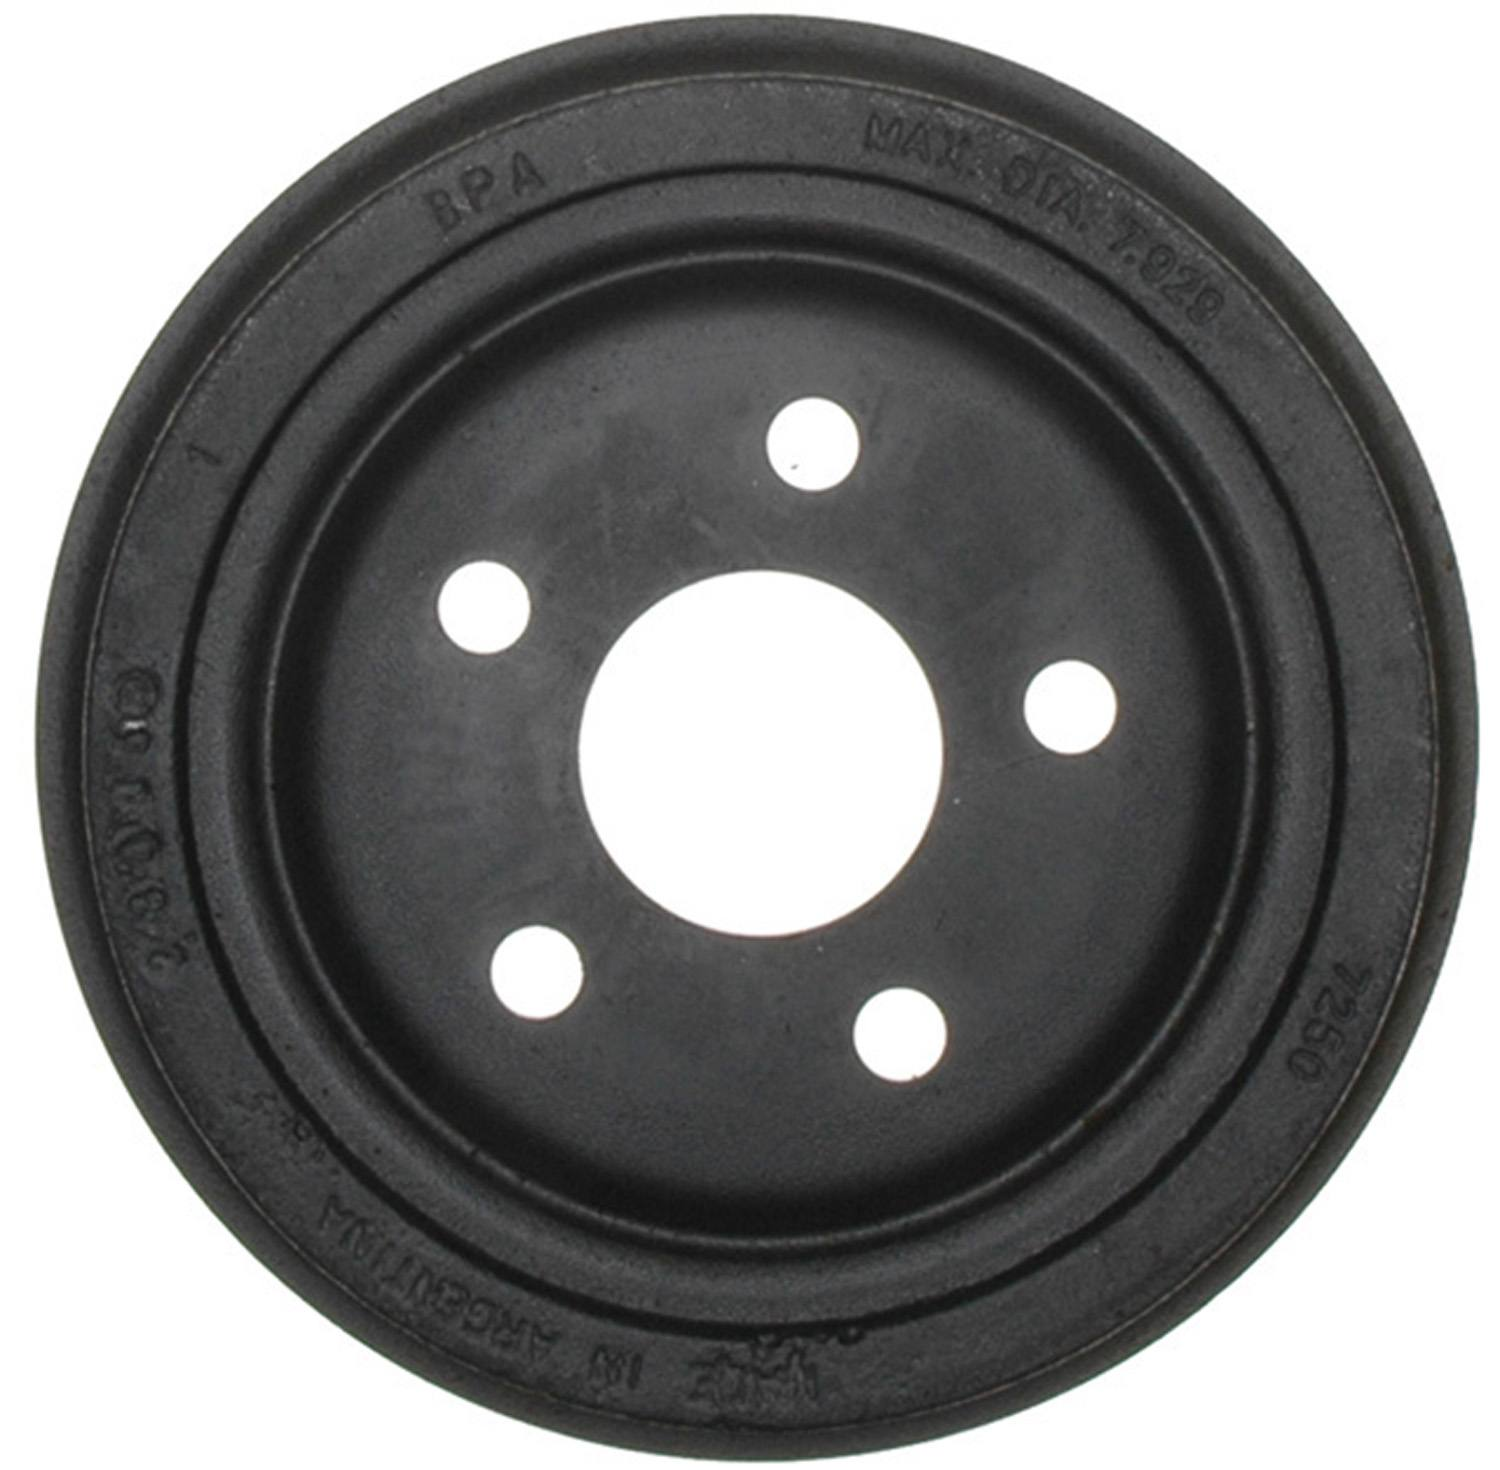 ACDELCO ADVANTAGE - Brake Drum - DCD 18B298A